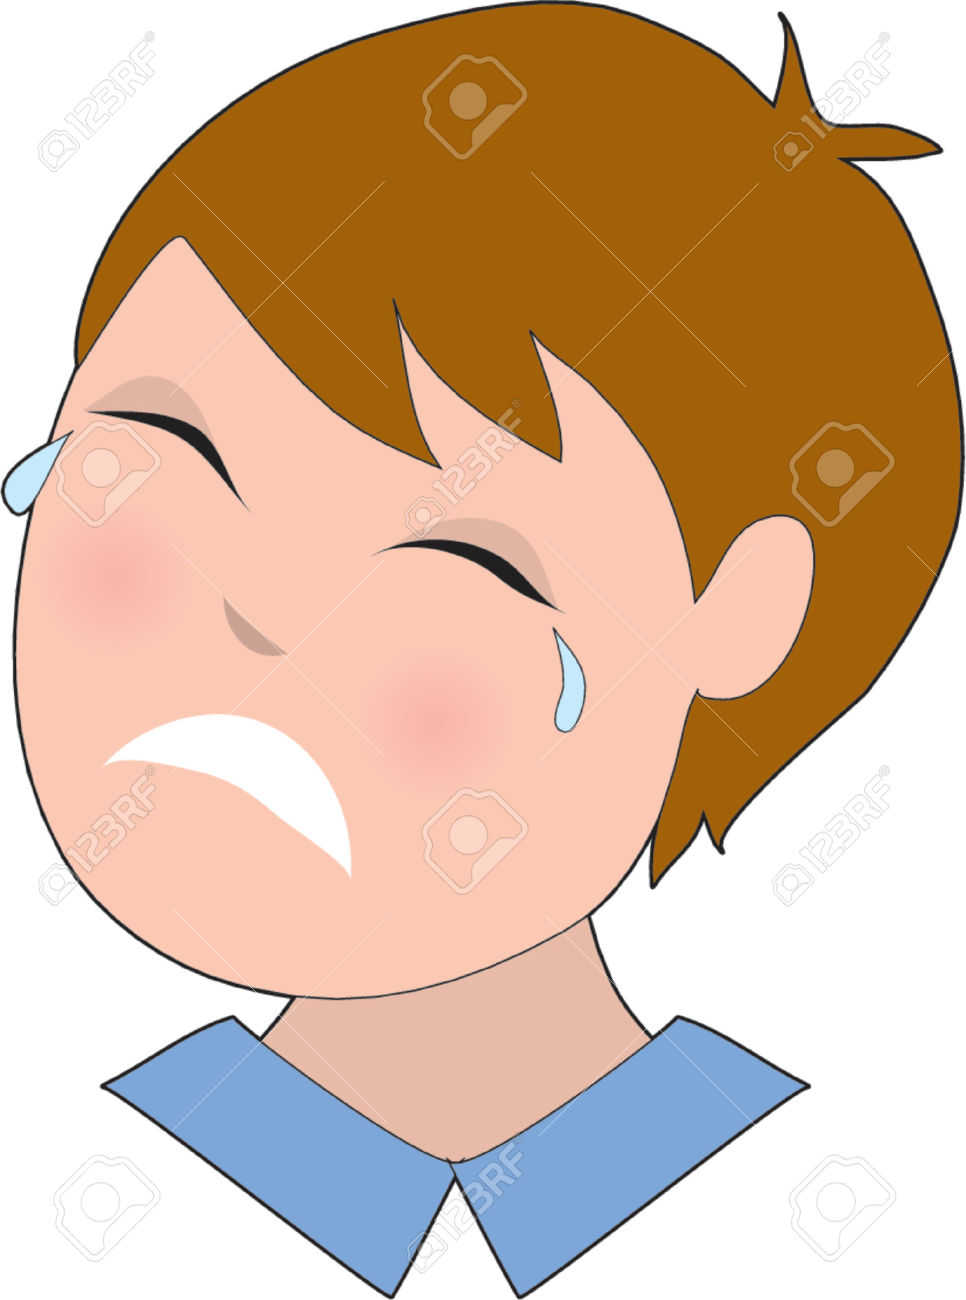 Sad face with tears clipart graphic royalty free library Sad Crying Face Clipart | Free download best Sad Crying Face ... graphic royalty free library